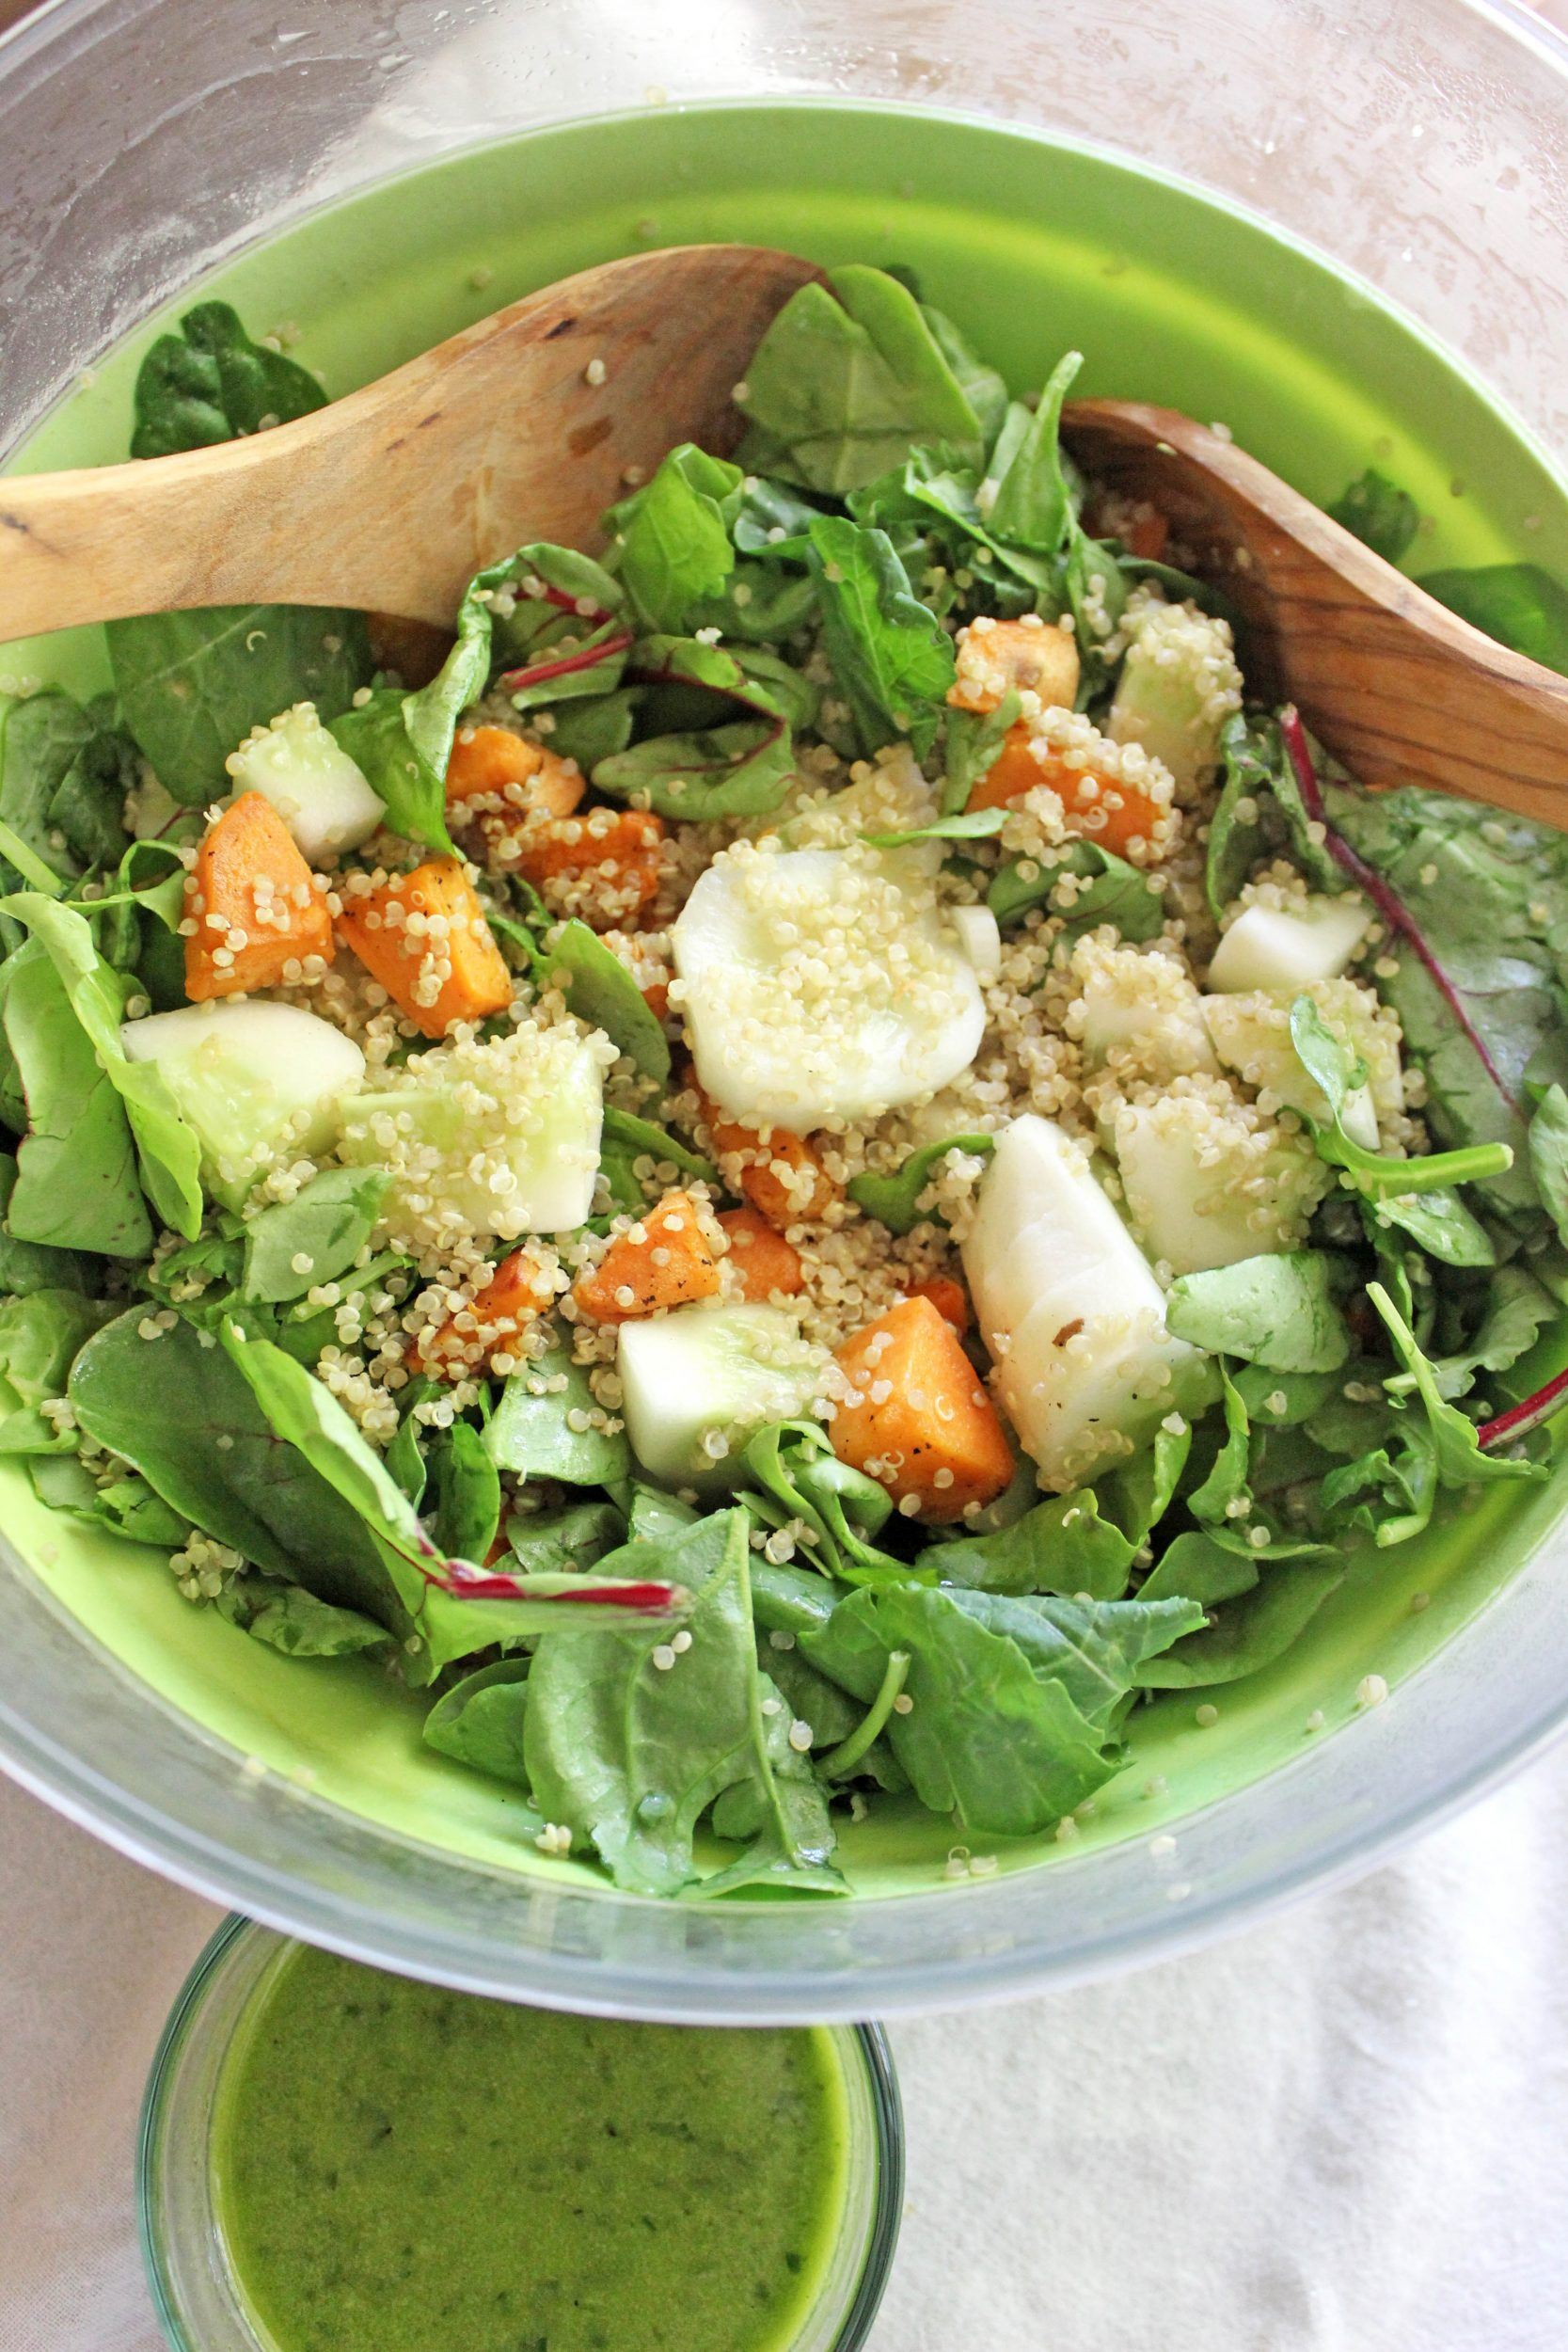 Kale Salad with Quinoa, Sweet Potatoes and Cucumbers